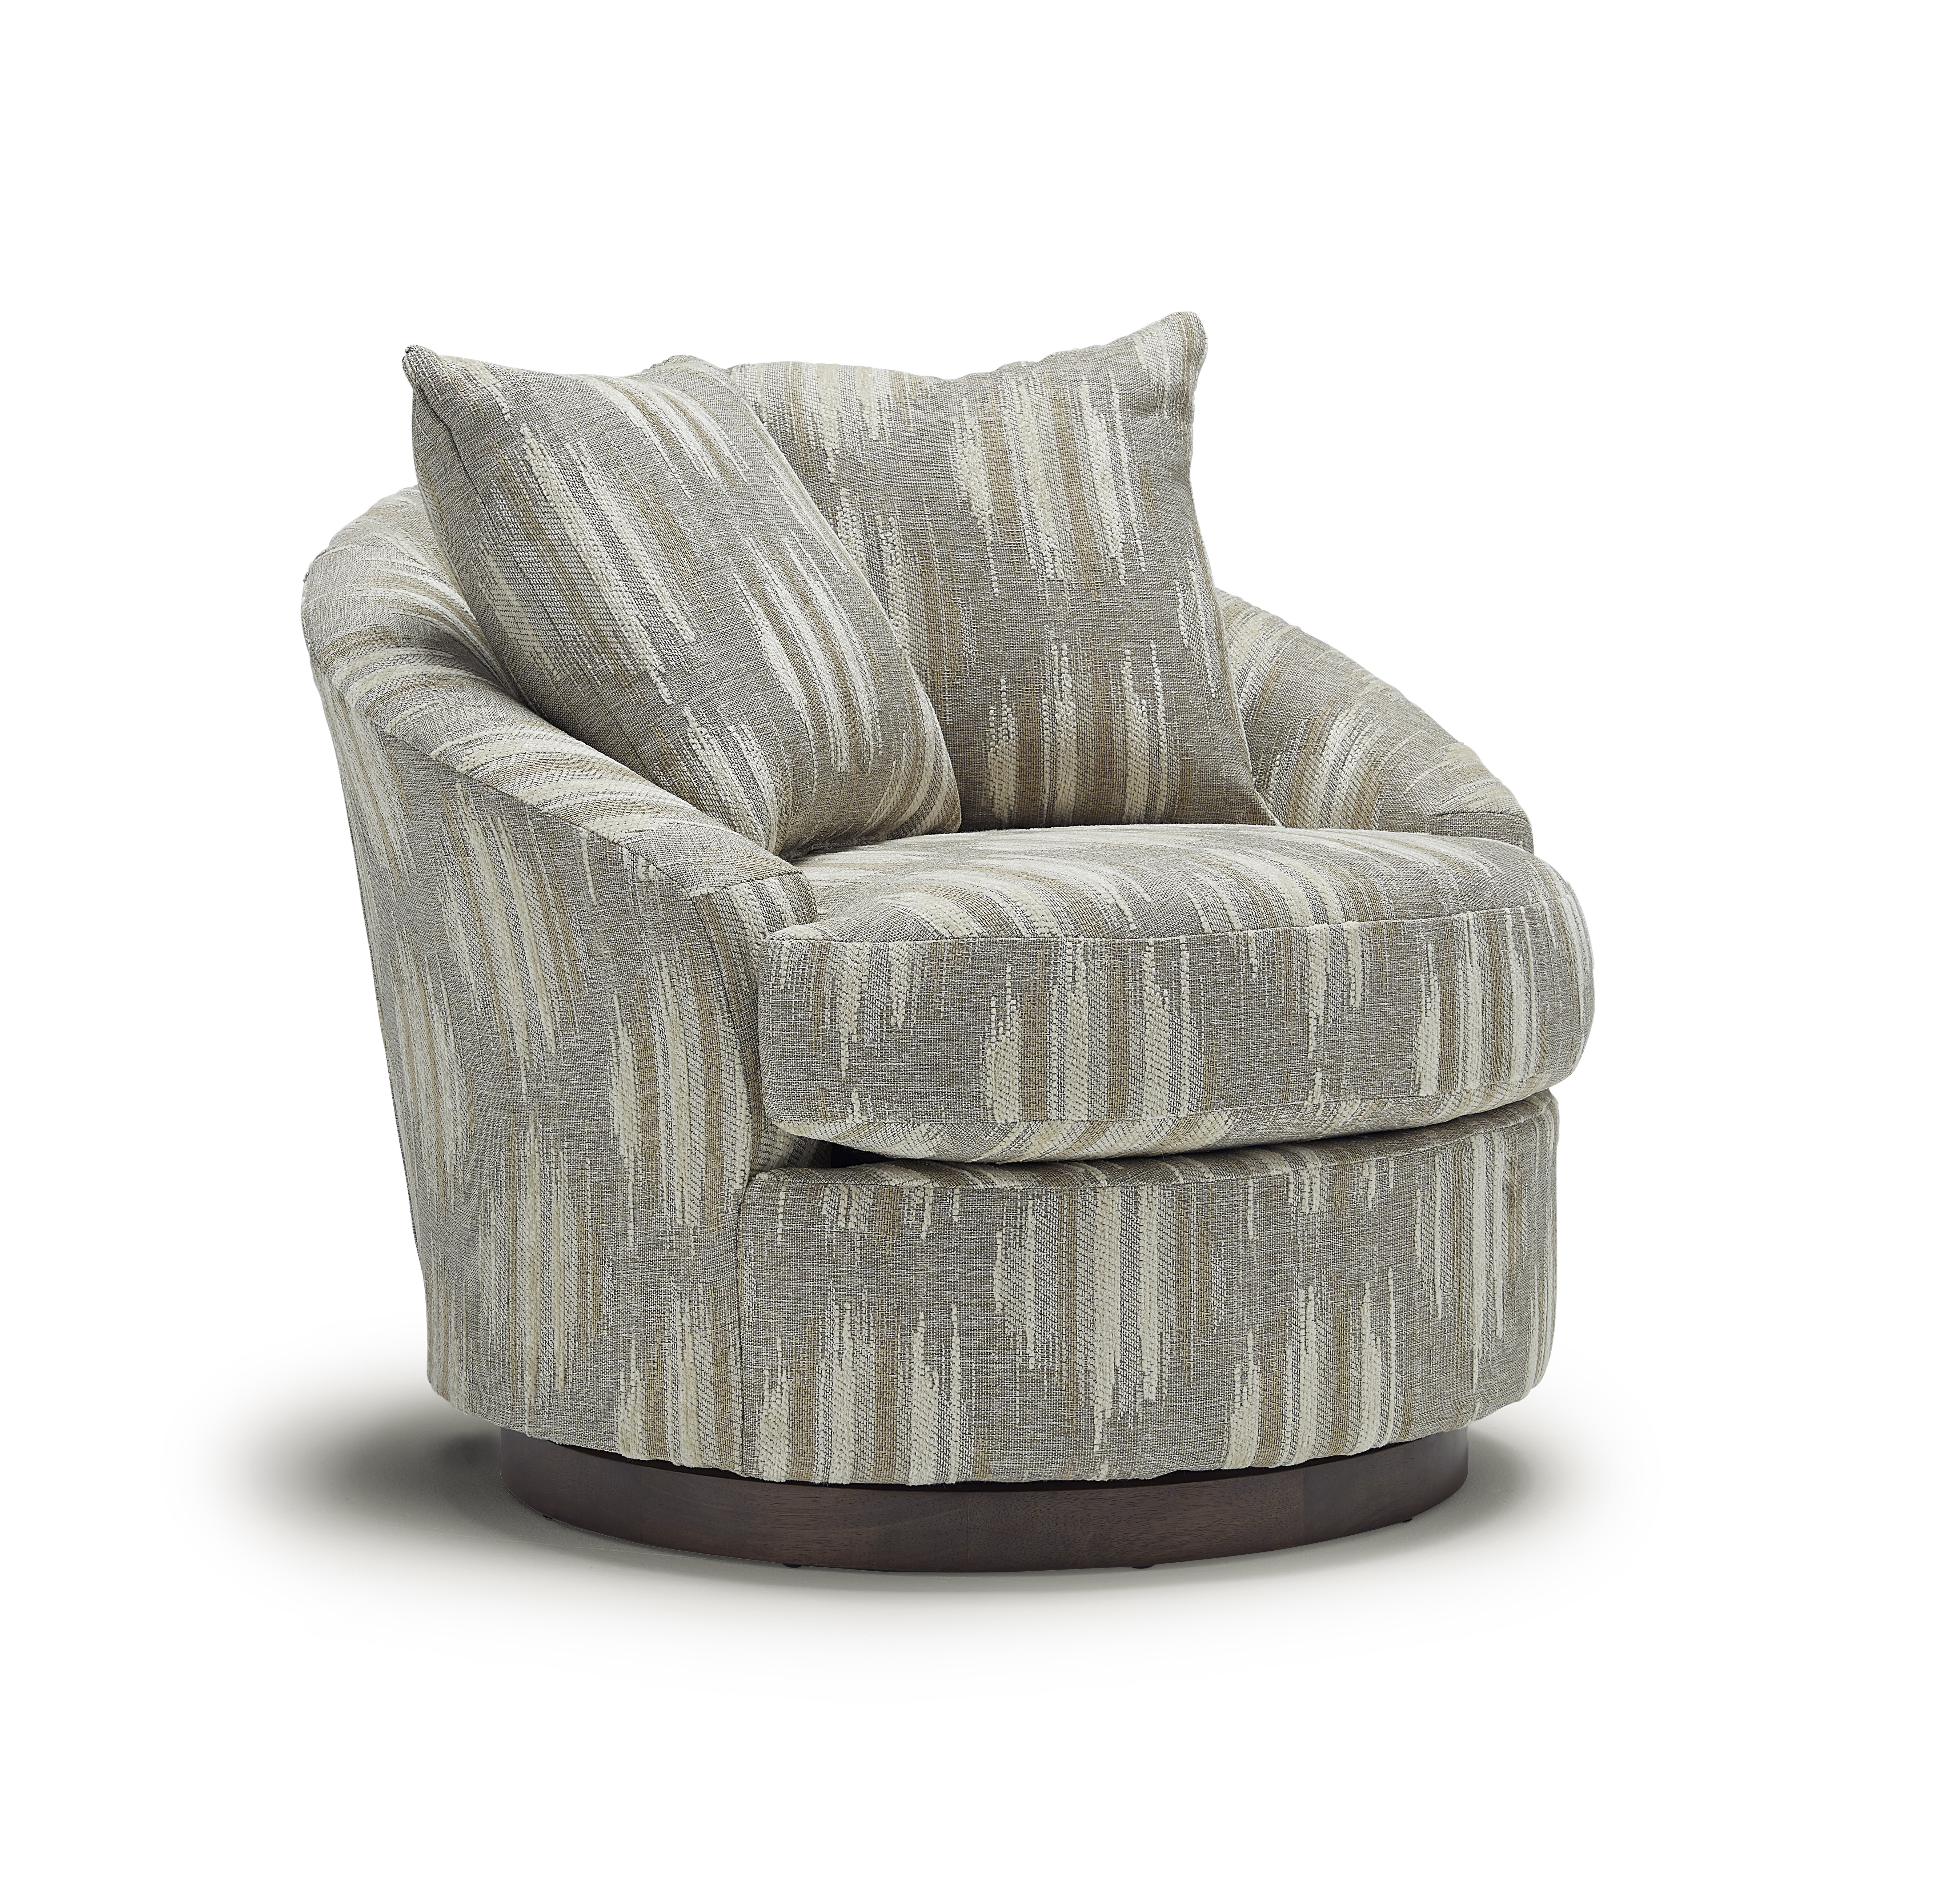 Alanna Swivel Barrel Chair by Best Home Furnishings at Van Hill Furniture